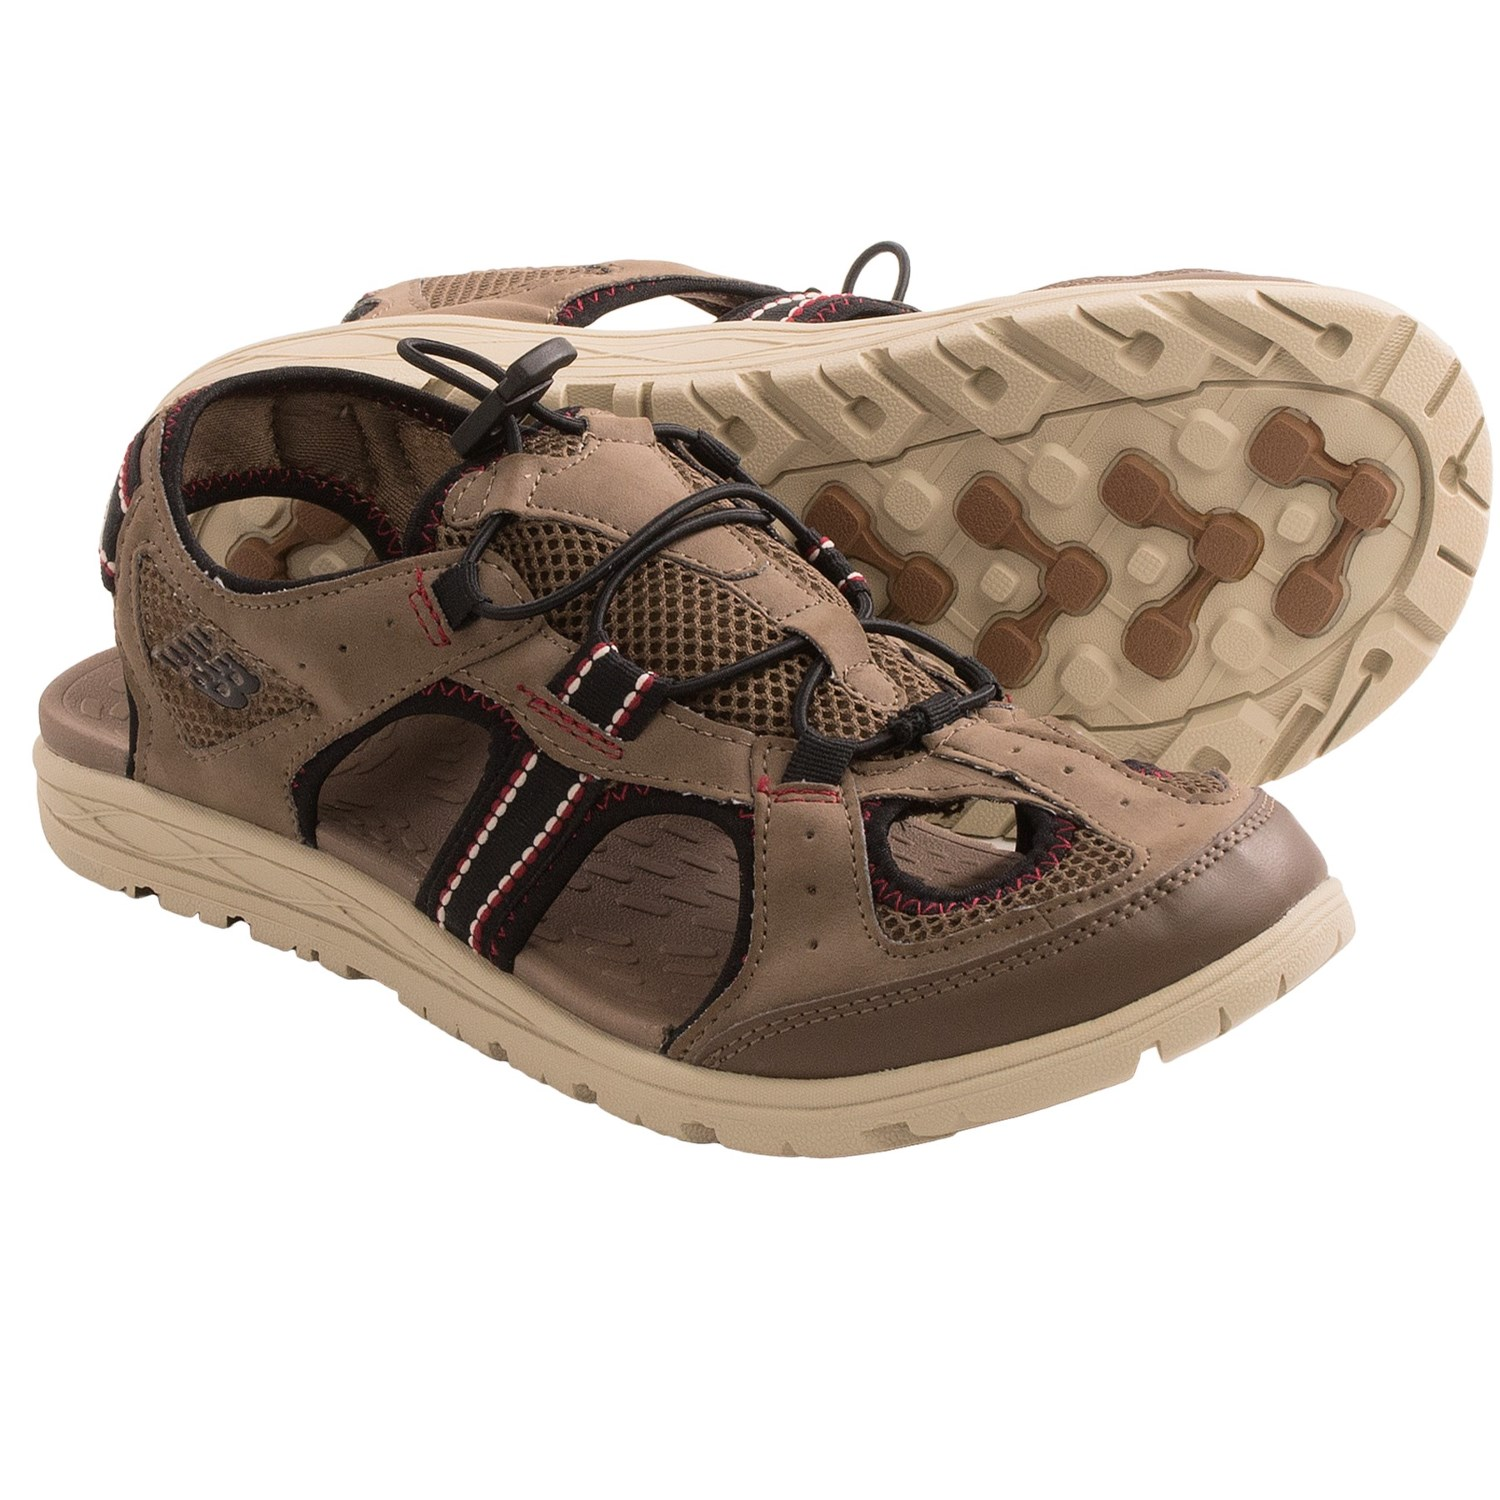 New Sandals Sale! Shop worldofweapons.tk's huge selection of New Sandals and save big! Over styles available. FREE Shipping & Exchanges, and a % price guarantee!